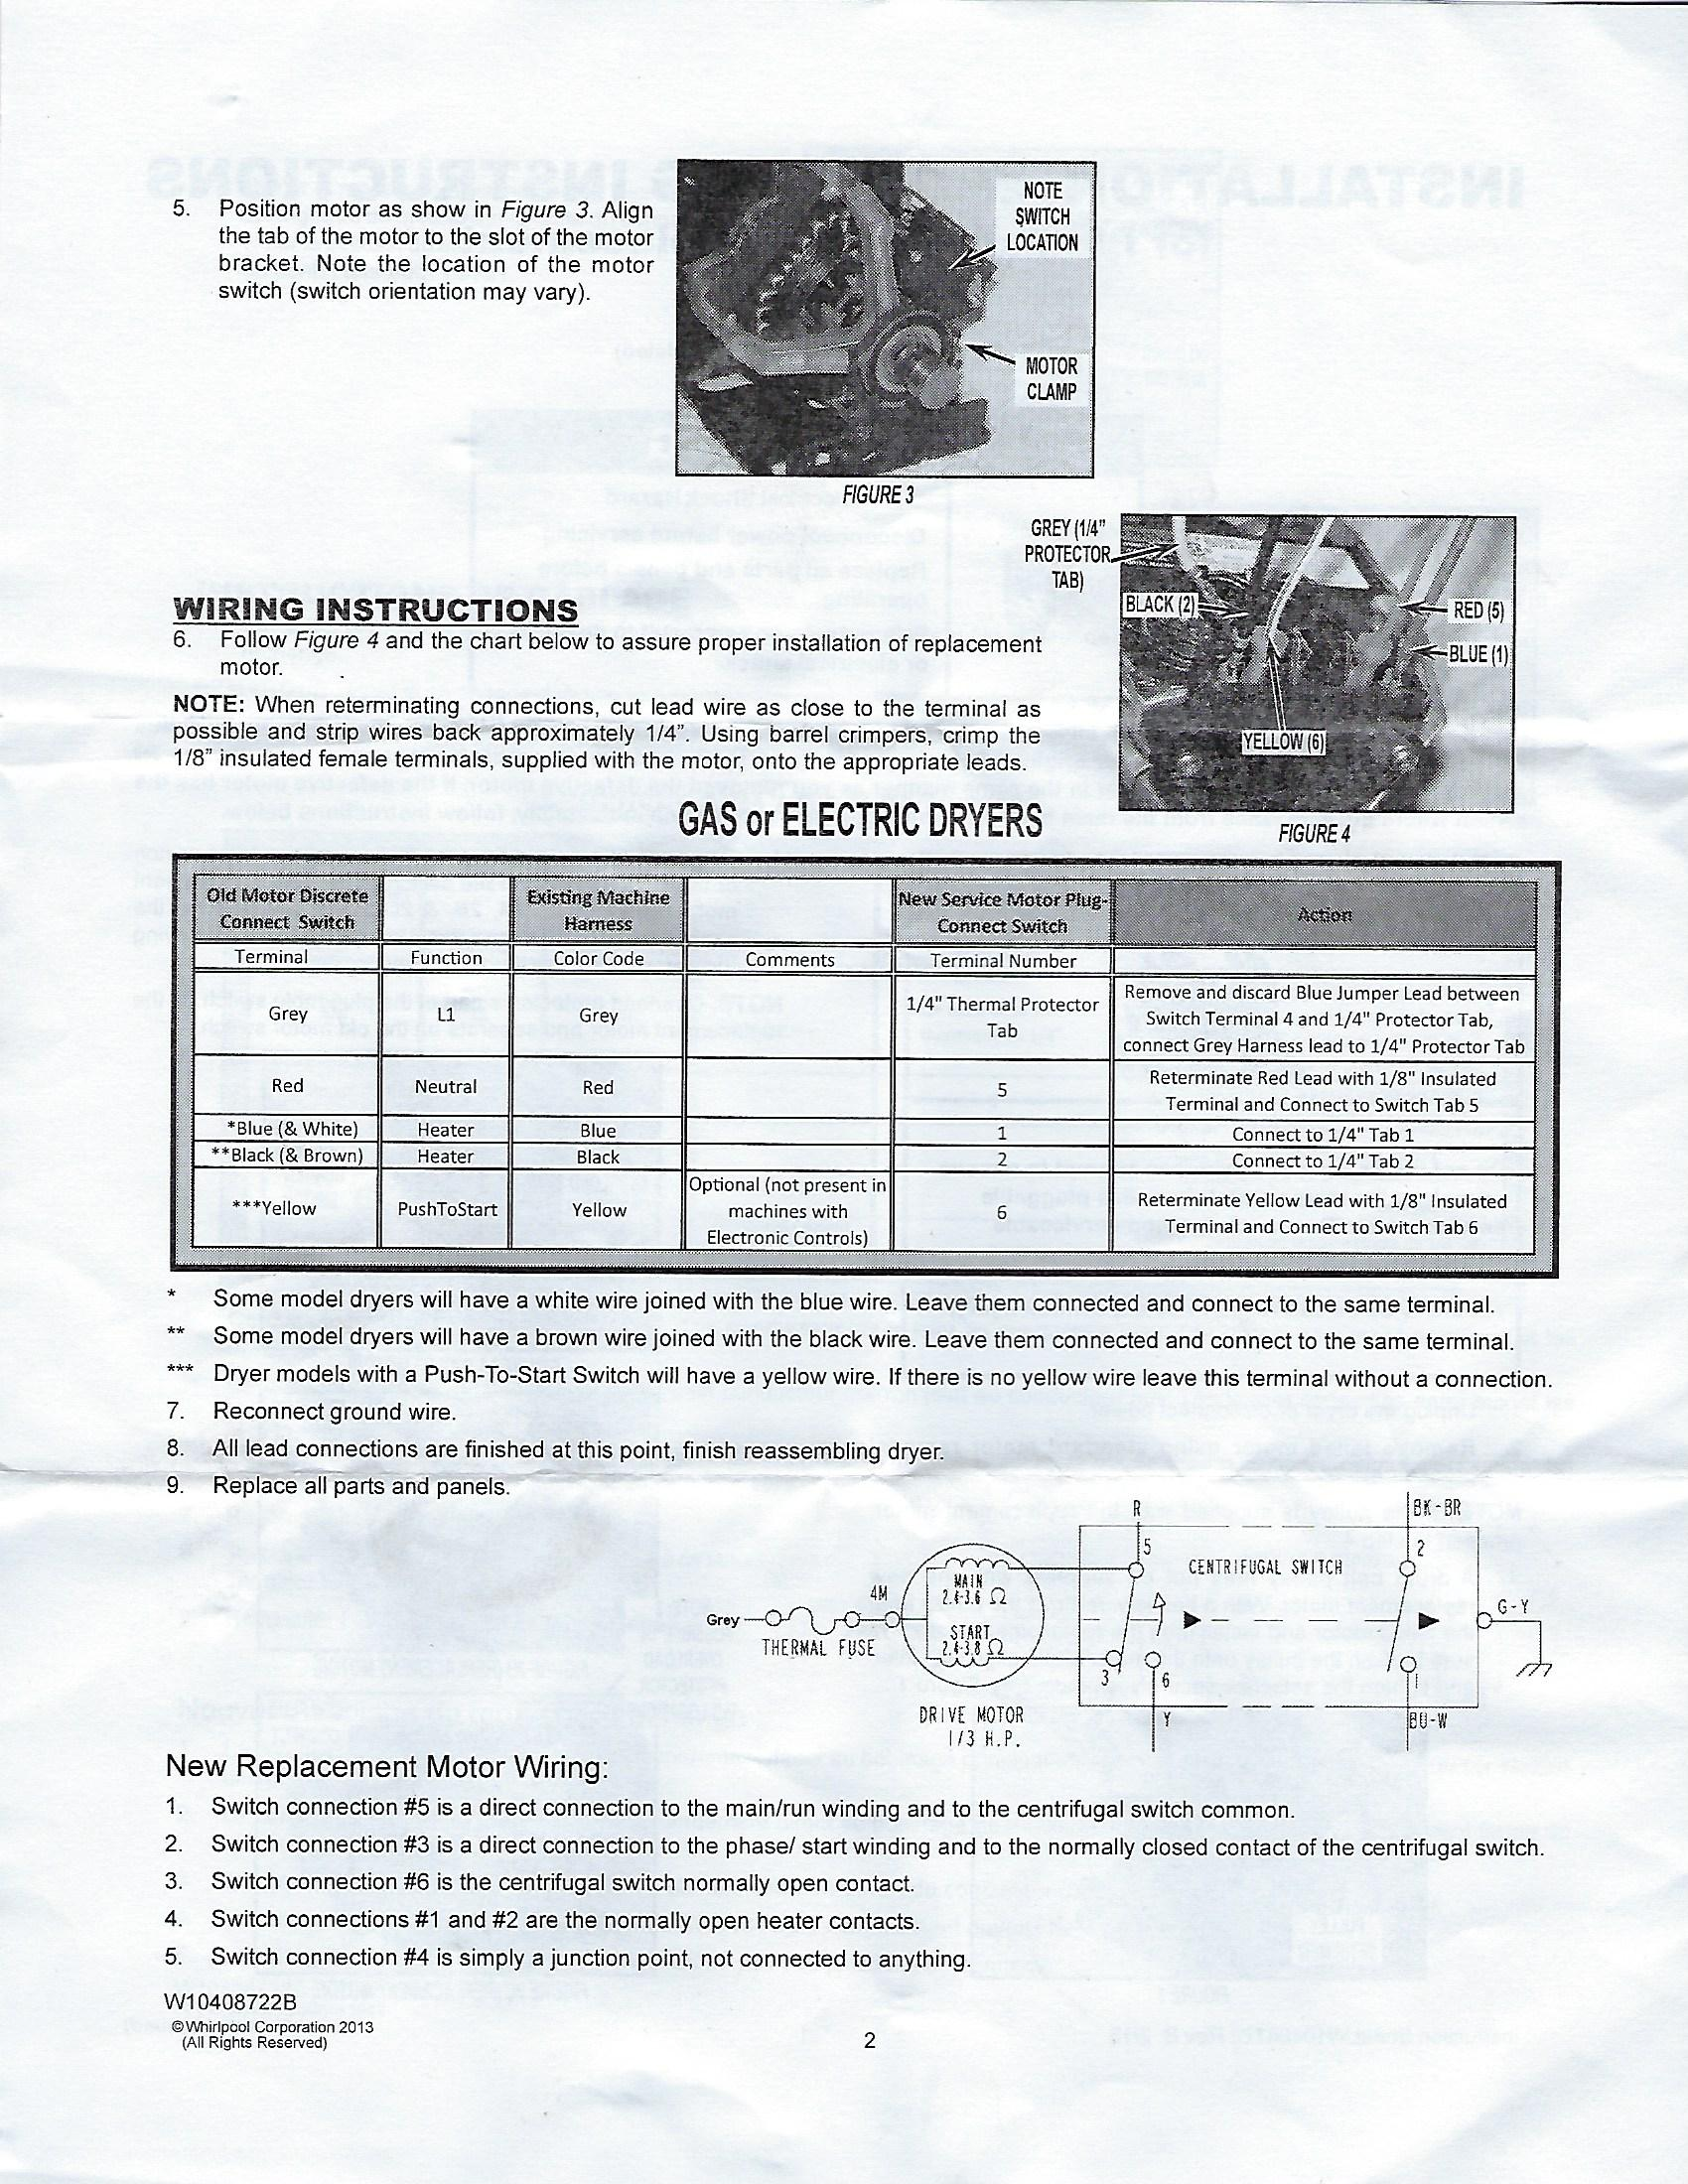 wiring diagram for maytag dryer motor wiring diagram progresif rh 19 mugher sandvik sps de